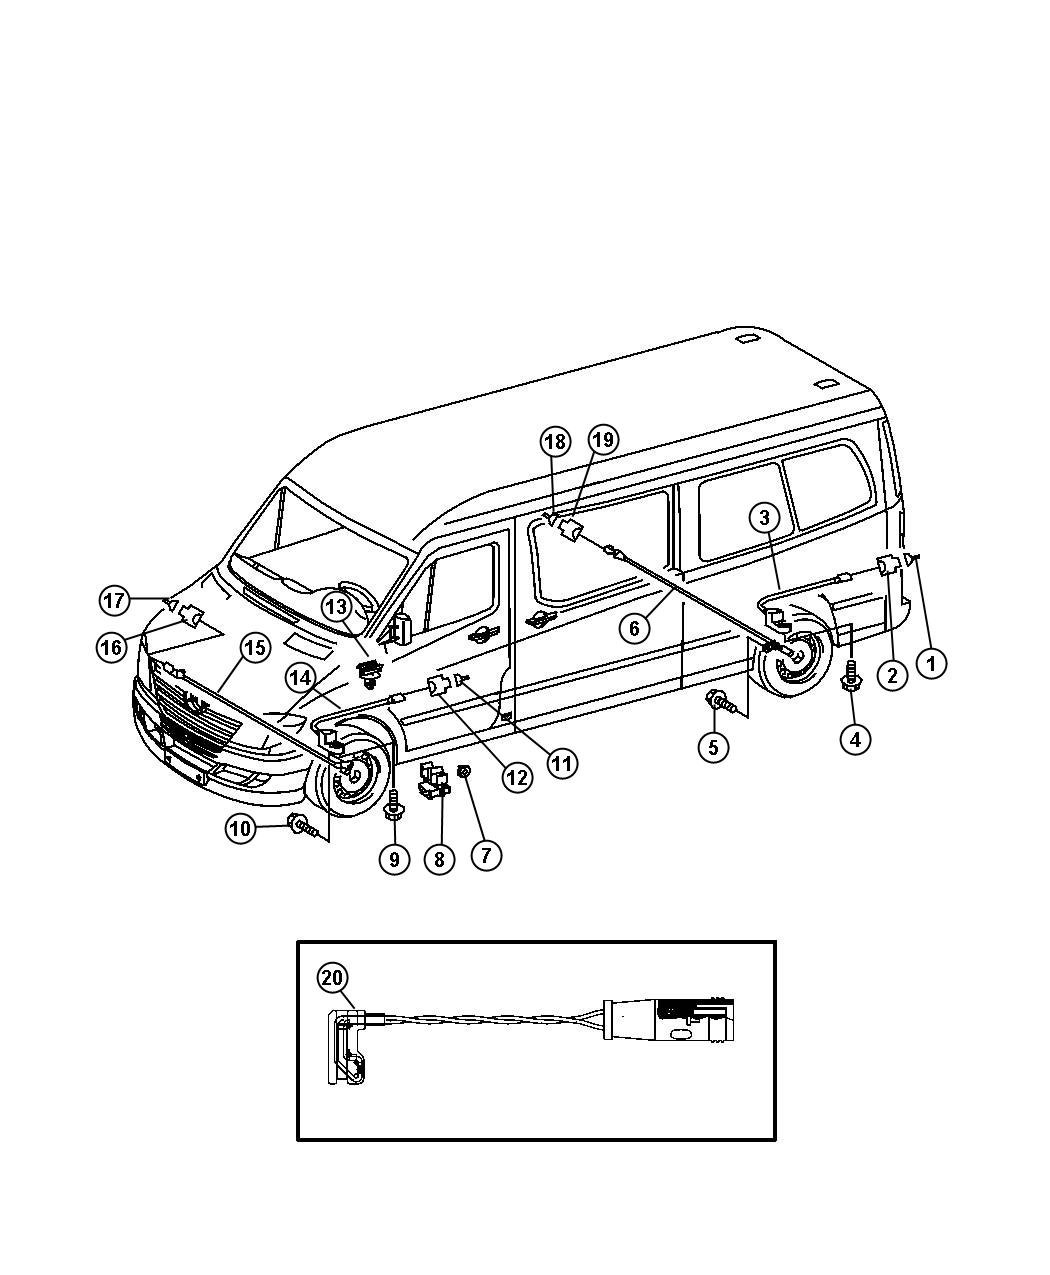 Ford Escape Diagram Ford Auto Wiring Diagram